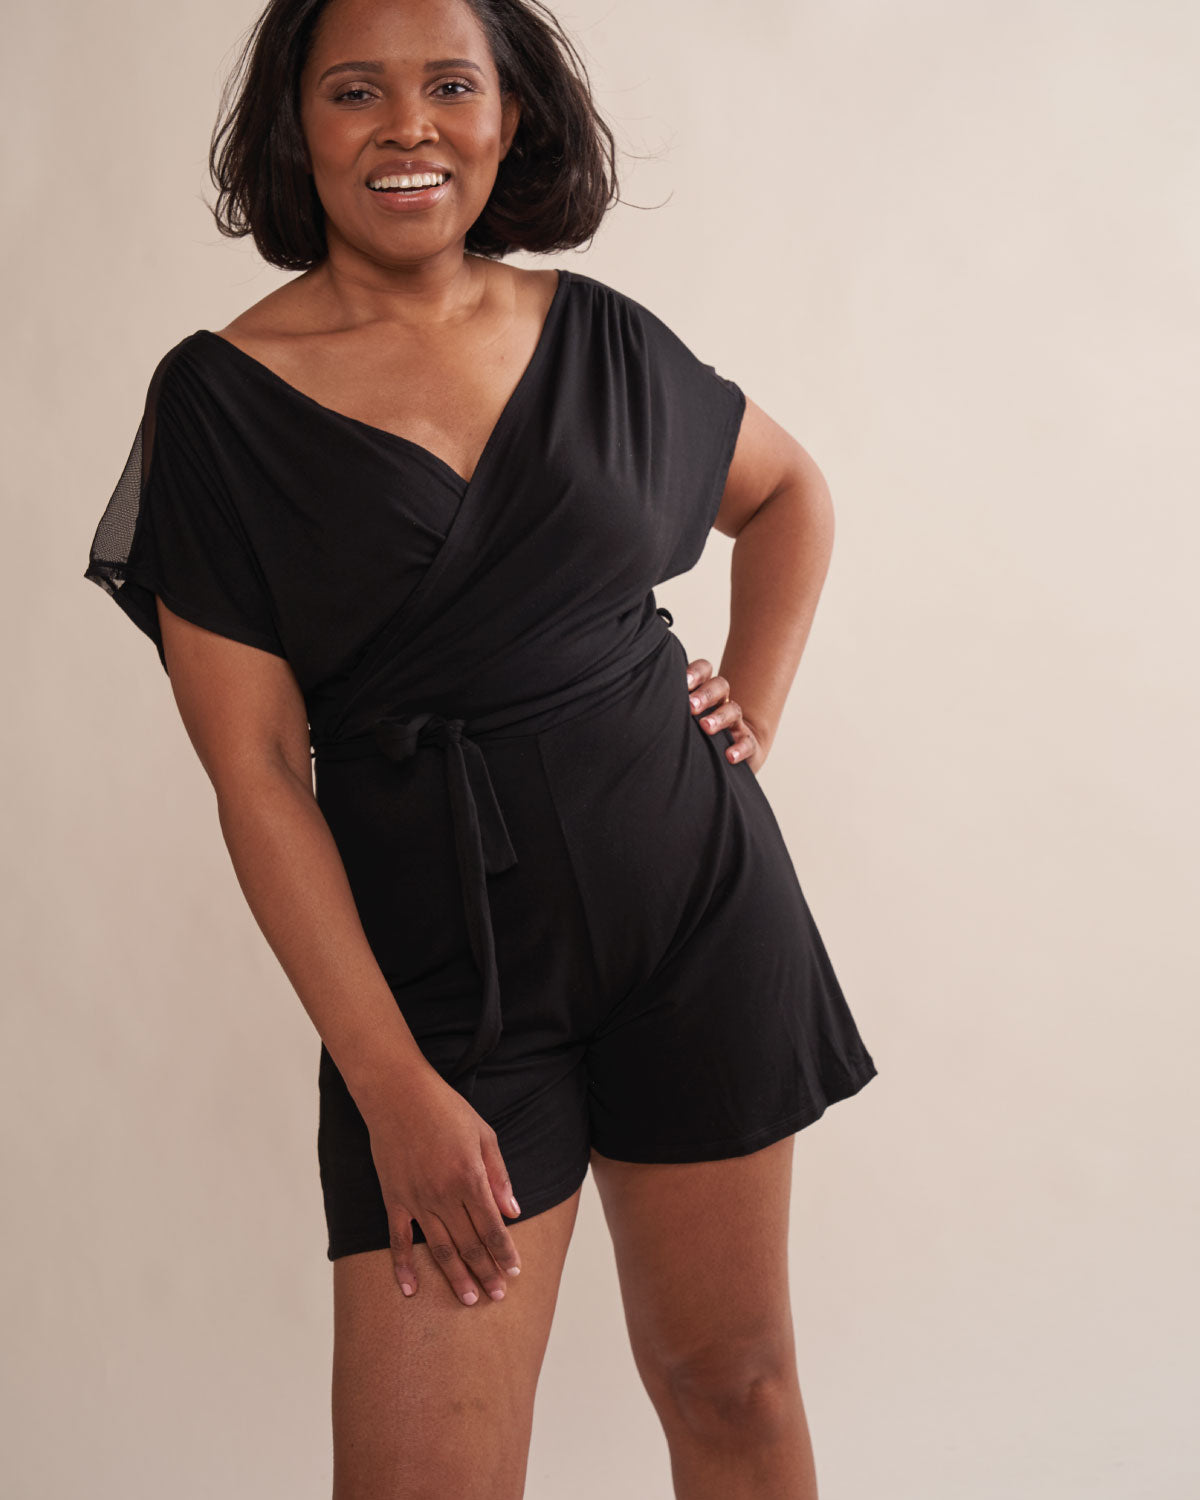 Black, wrap front soft modal romper with mesh shoulders, wide armholes, tie belt and attachable drain belt.